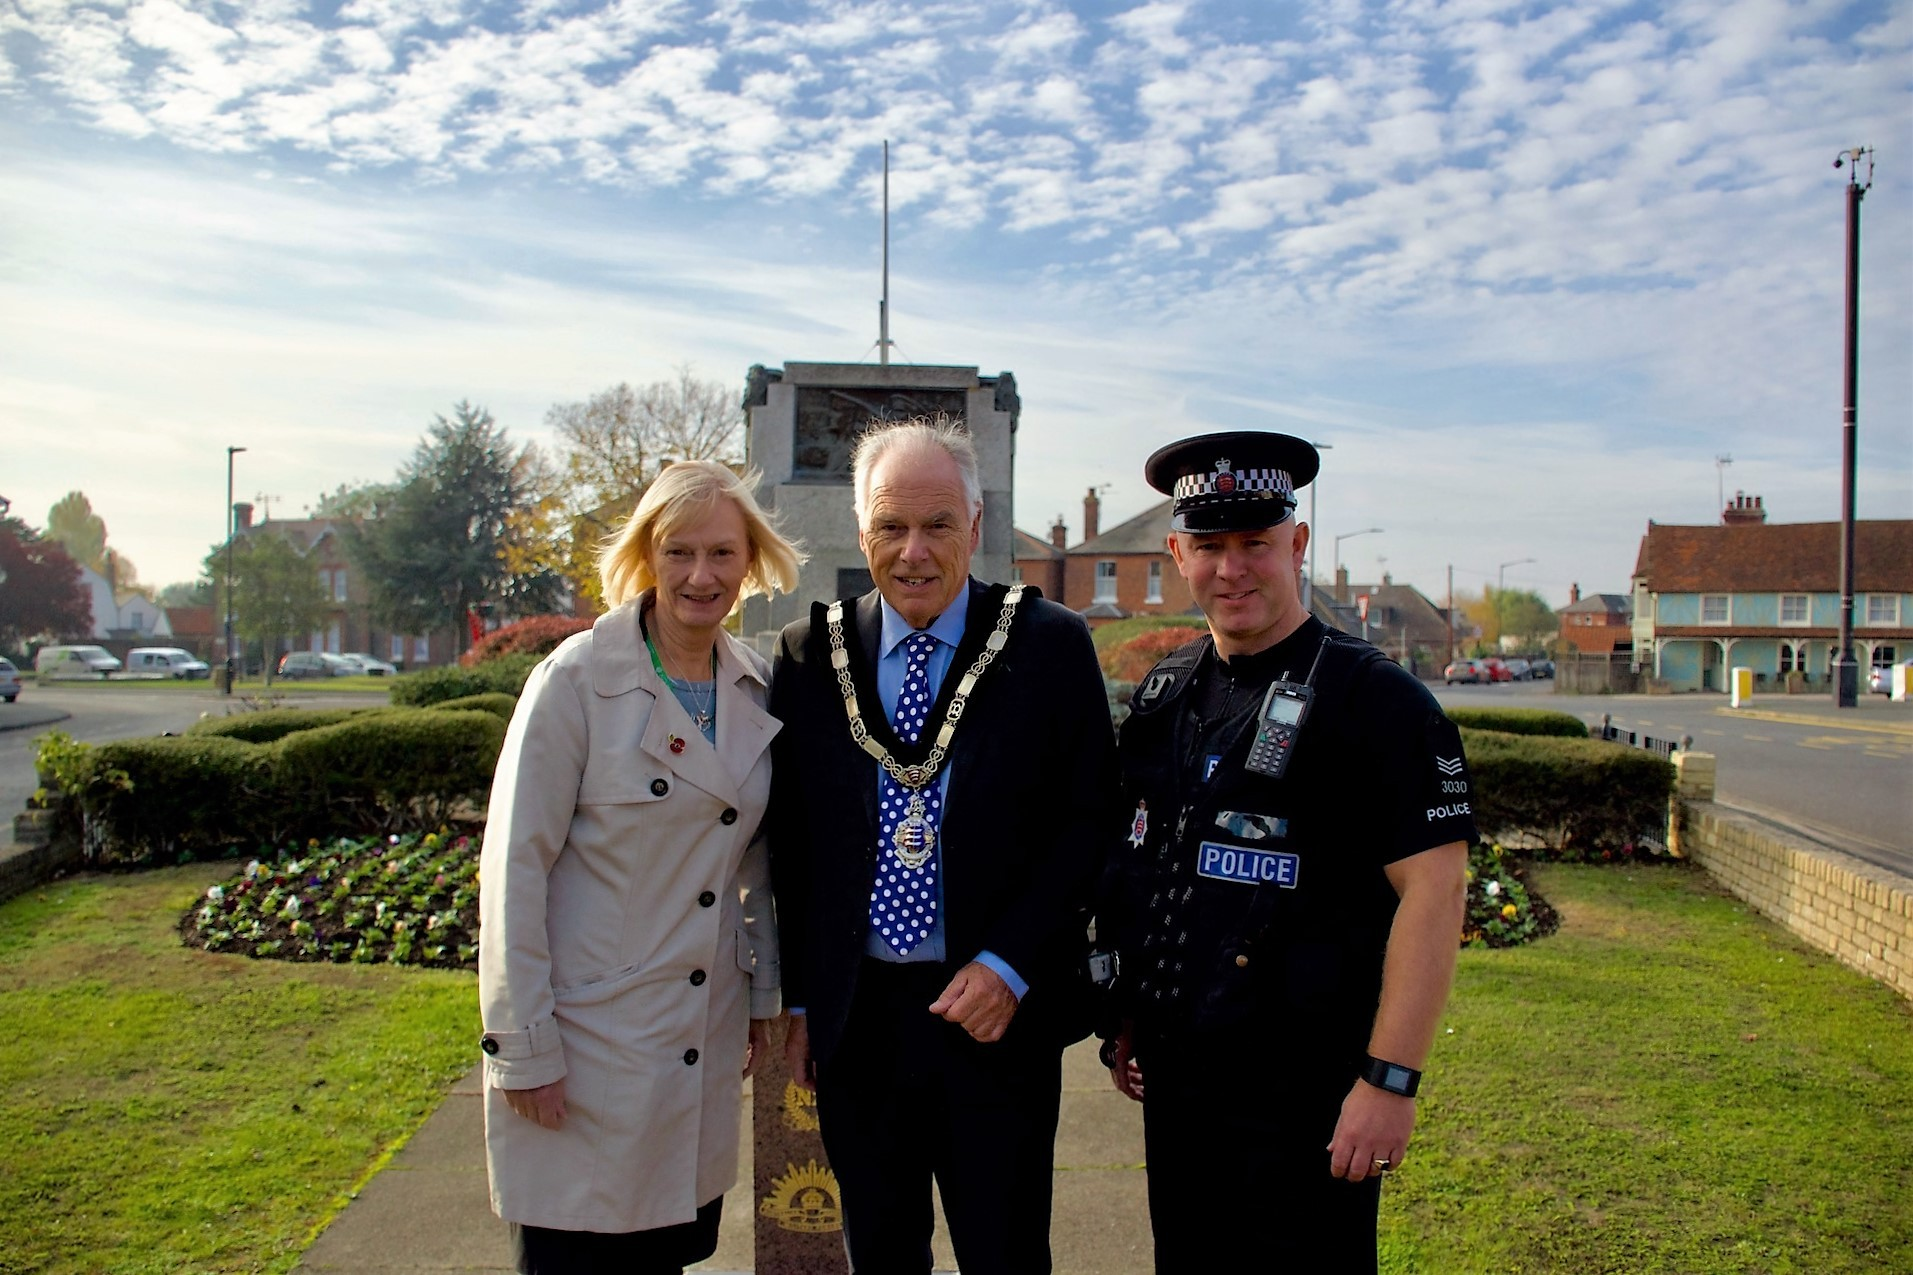 Extra patrols - Tendring councillor Lynda McWilliams, mayor Ben Smith and Simon Tattersall